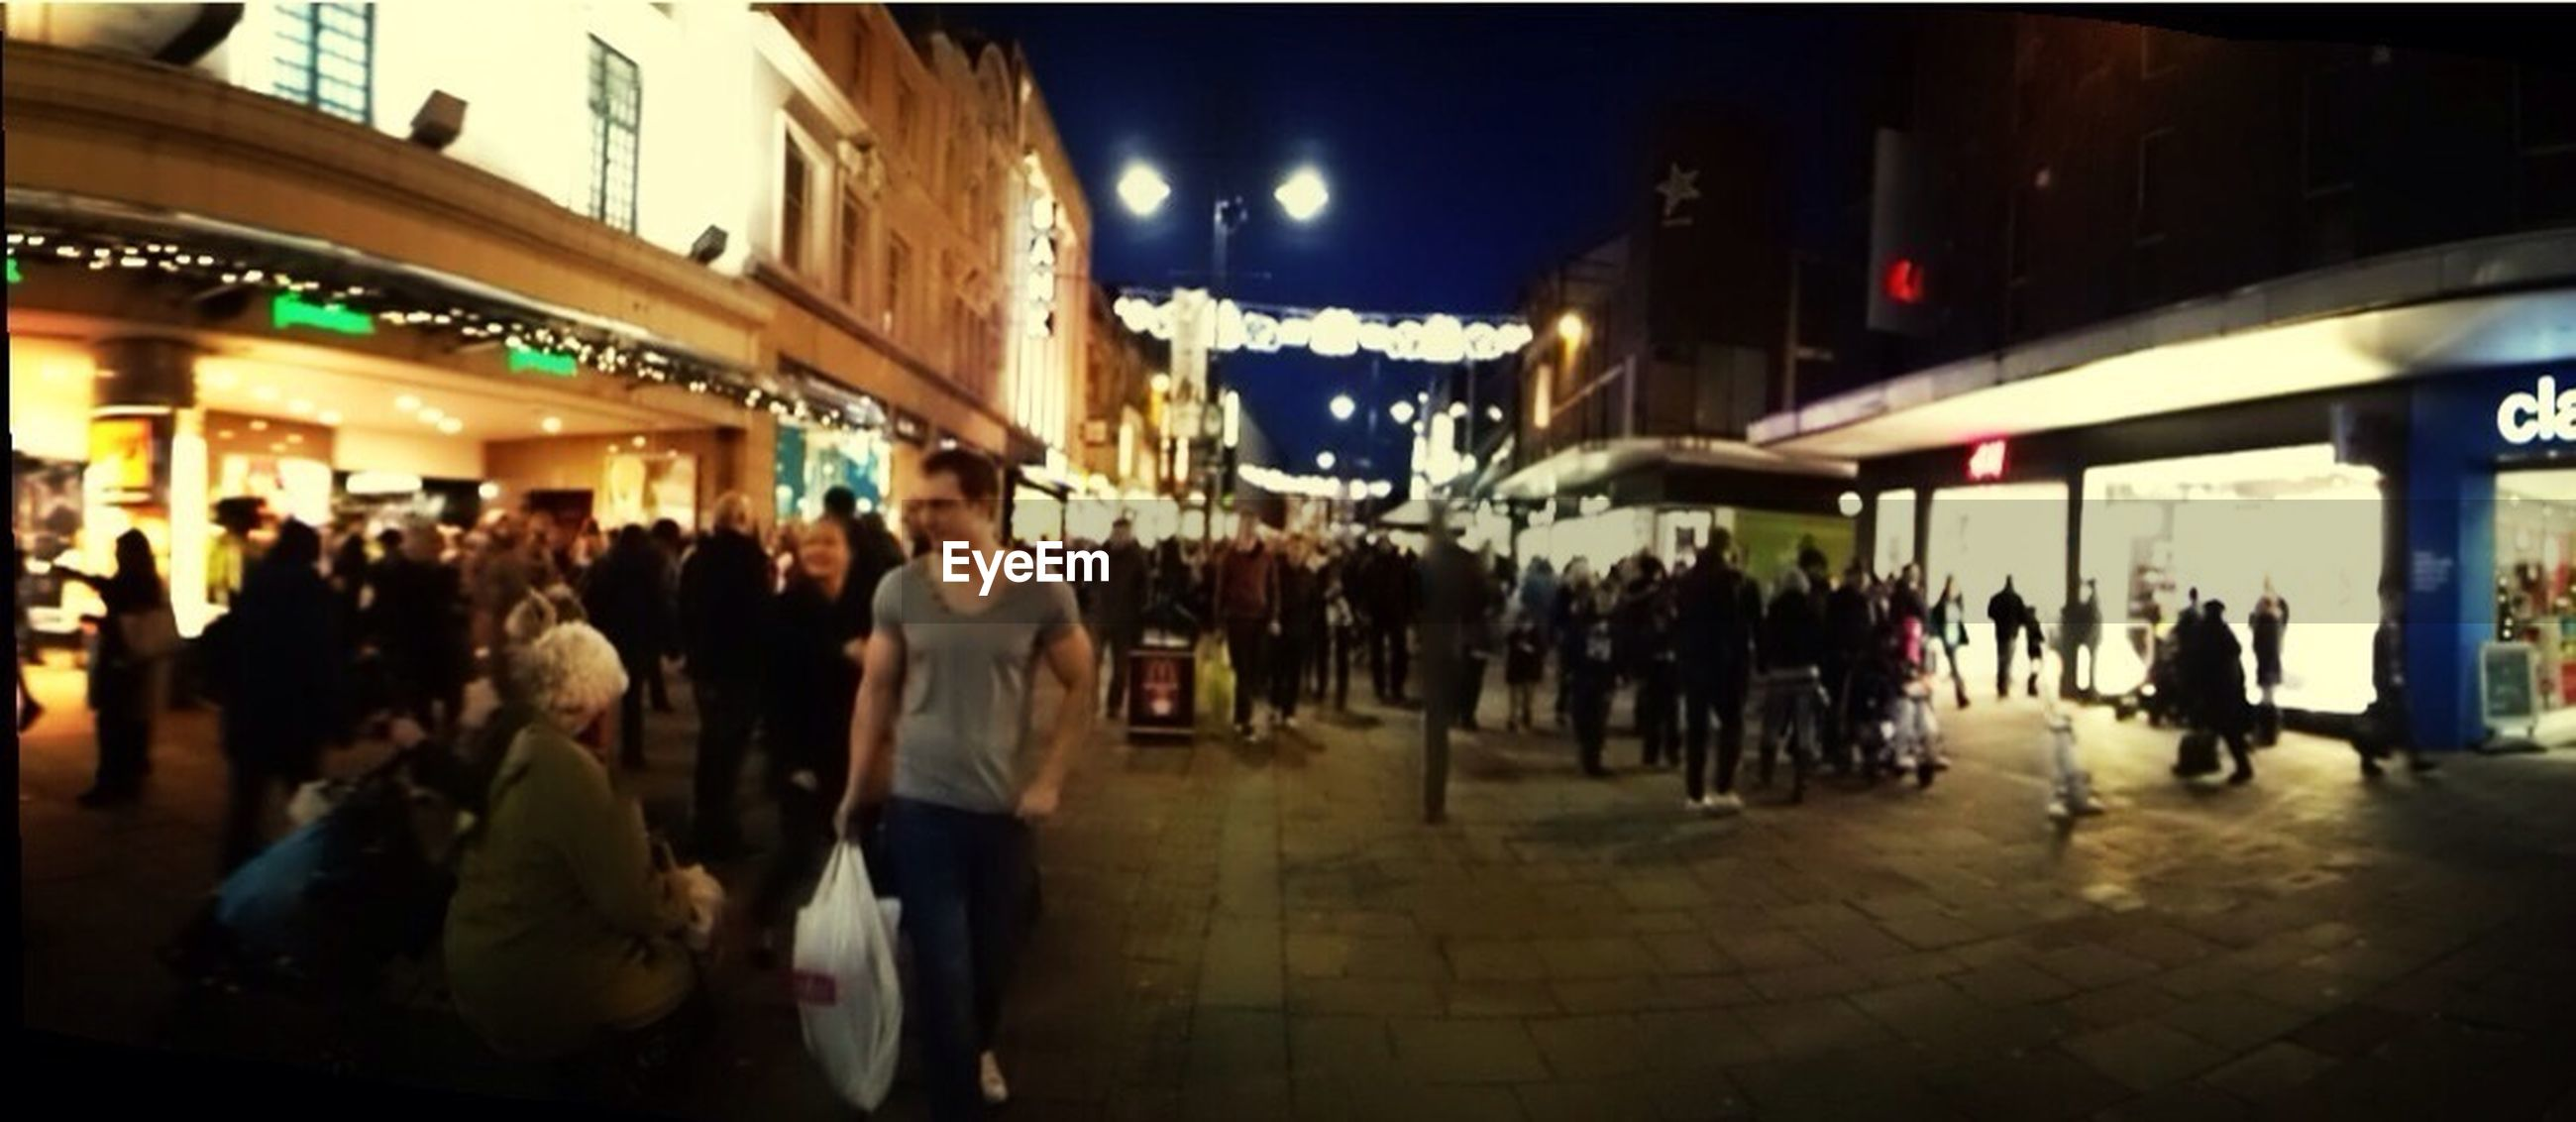 large group of people, illuminated, person, night, men, architecture, city life, built structure, crowd, city, lifestyles, building exterior, lighting equipment, market, walking, leisure activity, indoors, mixed age range, street